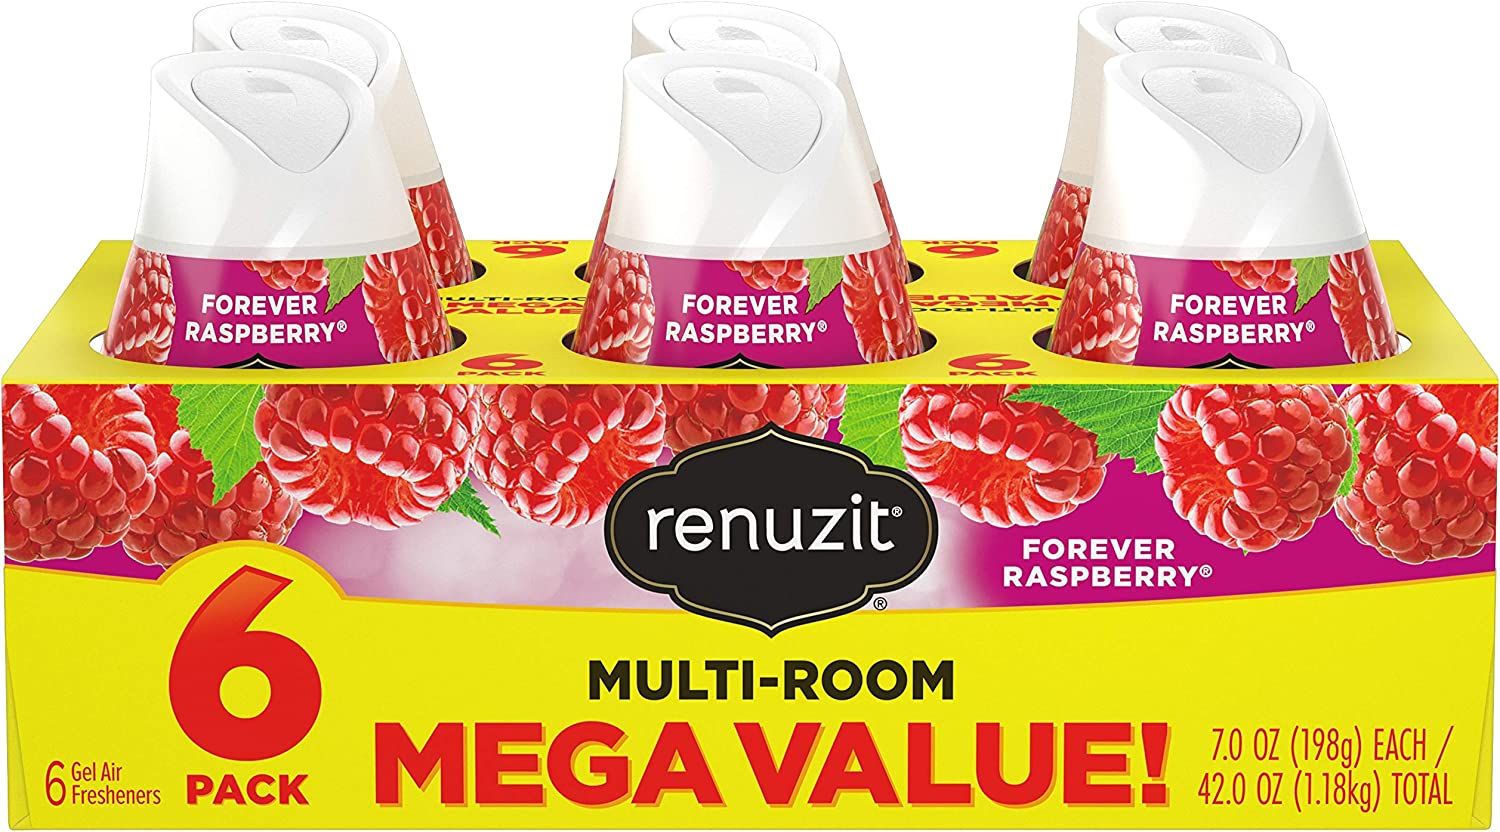 Renuzit Adjustable Air Freshener Gel, Forever Raspberry, 7 Ounces (6 Count)